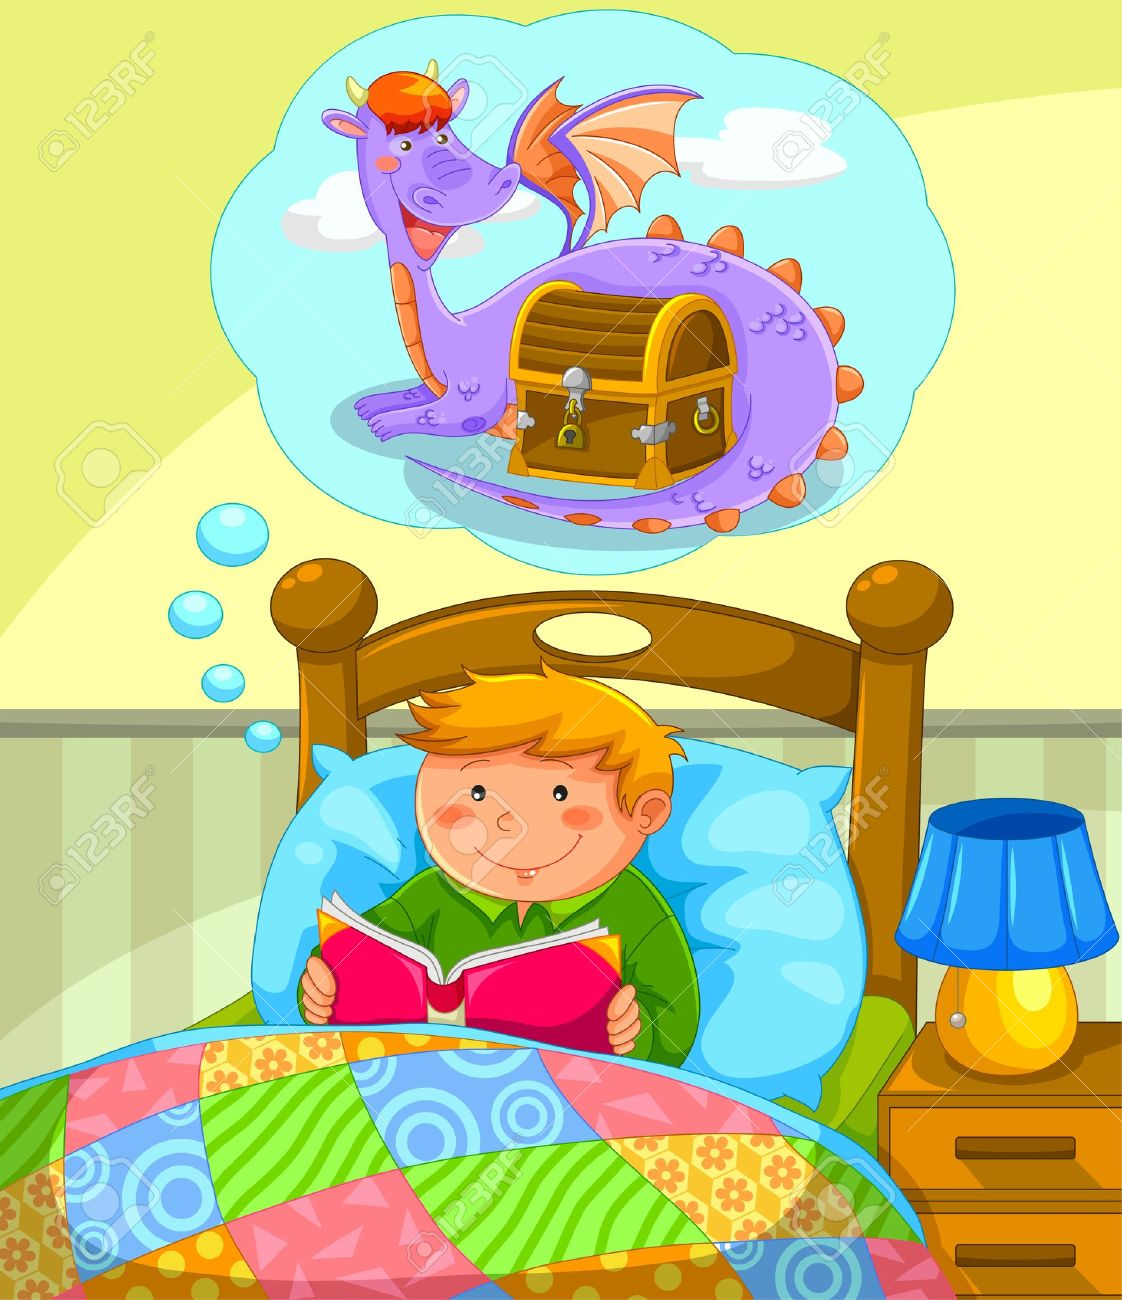 Reading a book in bed clipart vector library download Boy In Bed Reading A Book About Dragons Royalty Free Cliparts ... vector library download